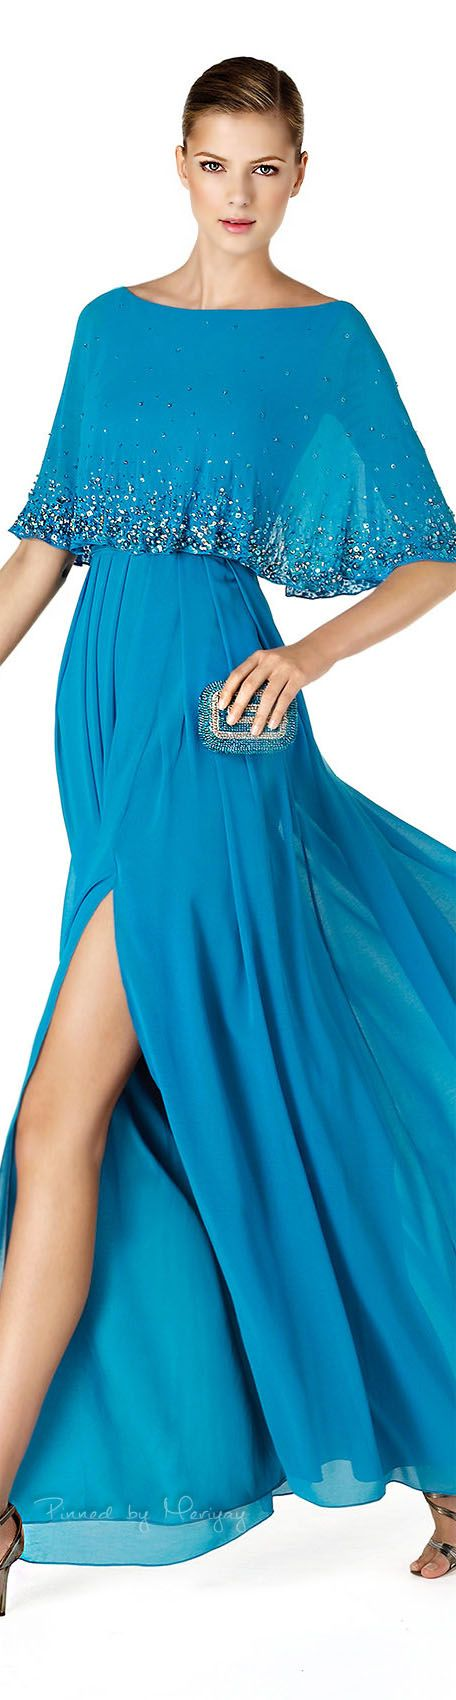 This flowing mother of the bride evening dress covers the upper bodice well. A pretty blue evening gown for the mother of the groom who may be modest. See more mother of the bride options at https://www.dariuscordell.com/featured/custom-made-mother-of-the-bride-evening-dresses/